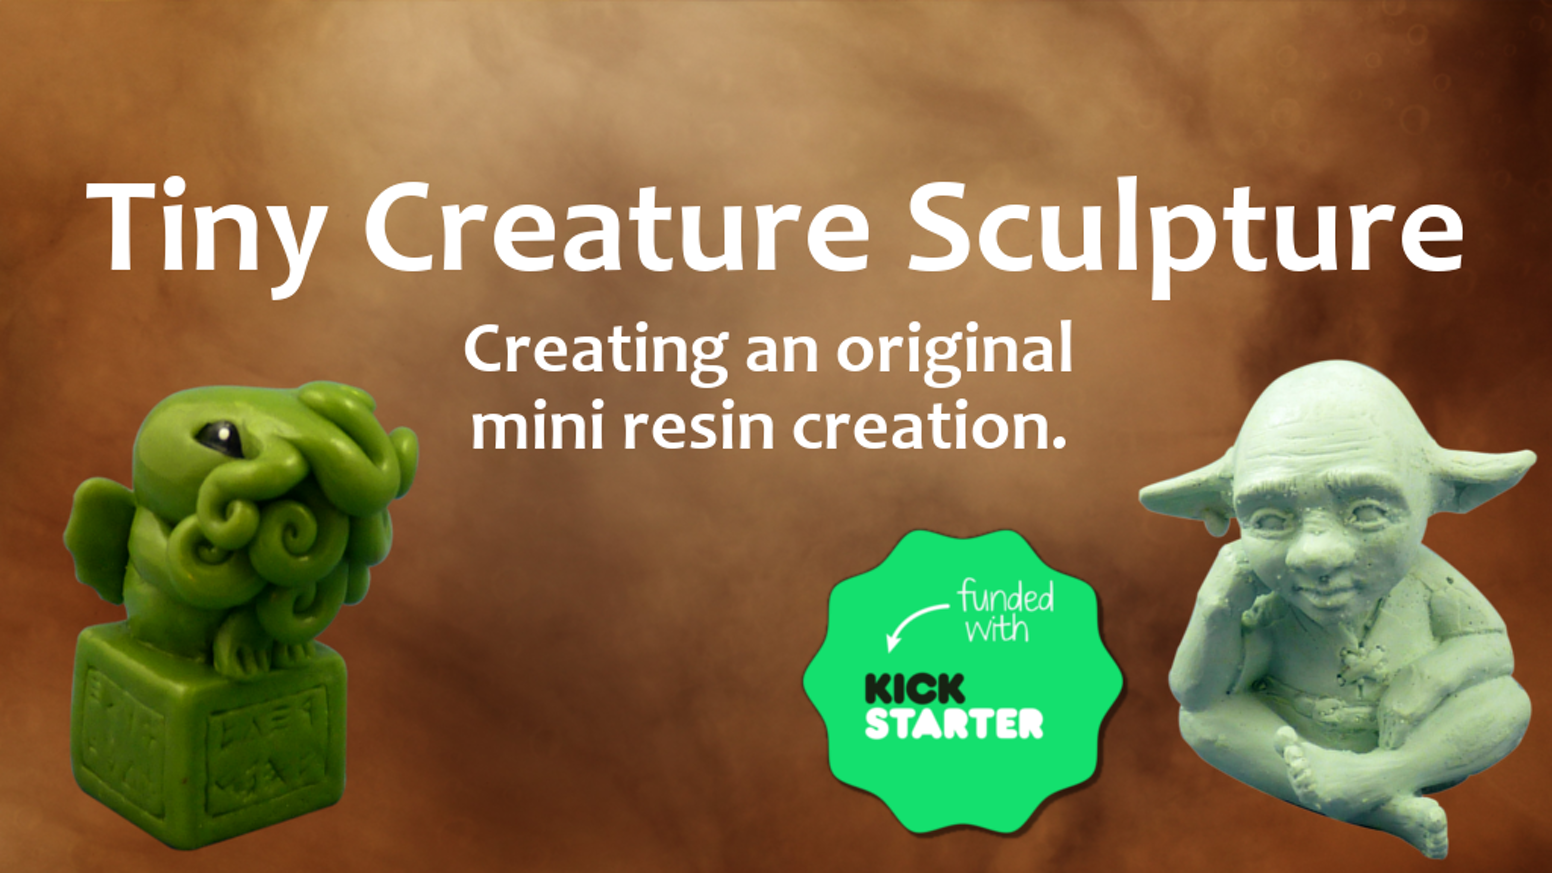 Creating a small creature sculpture cast in resin.